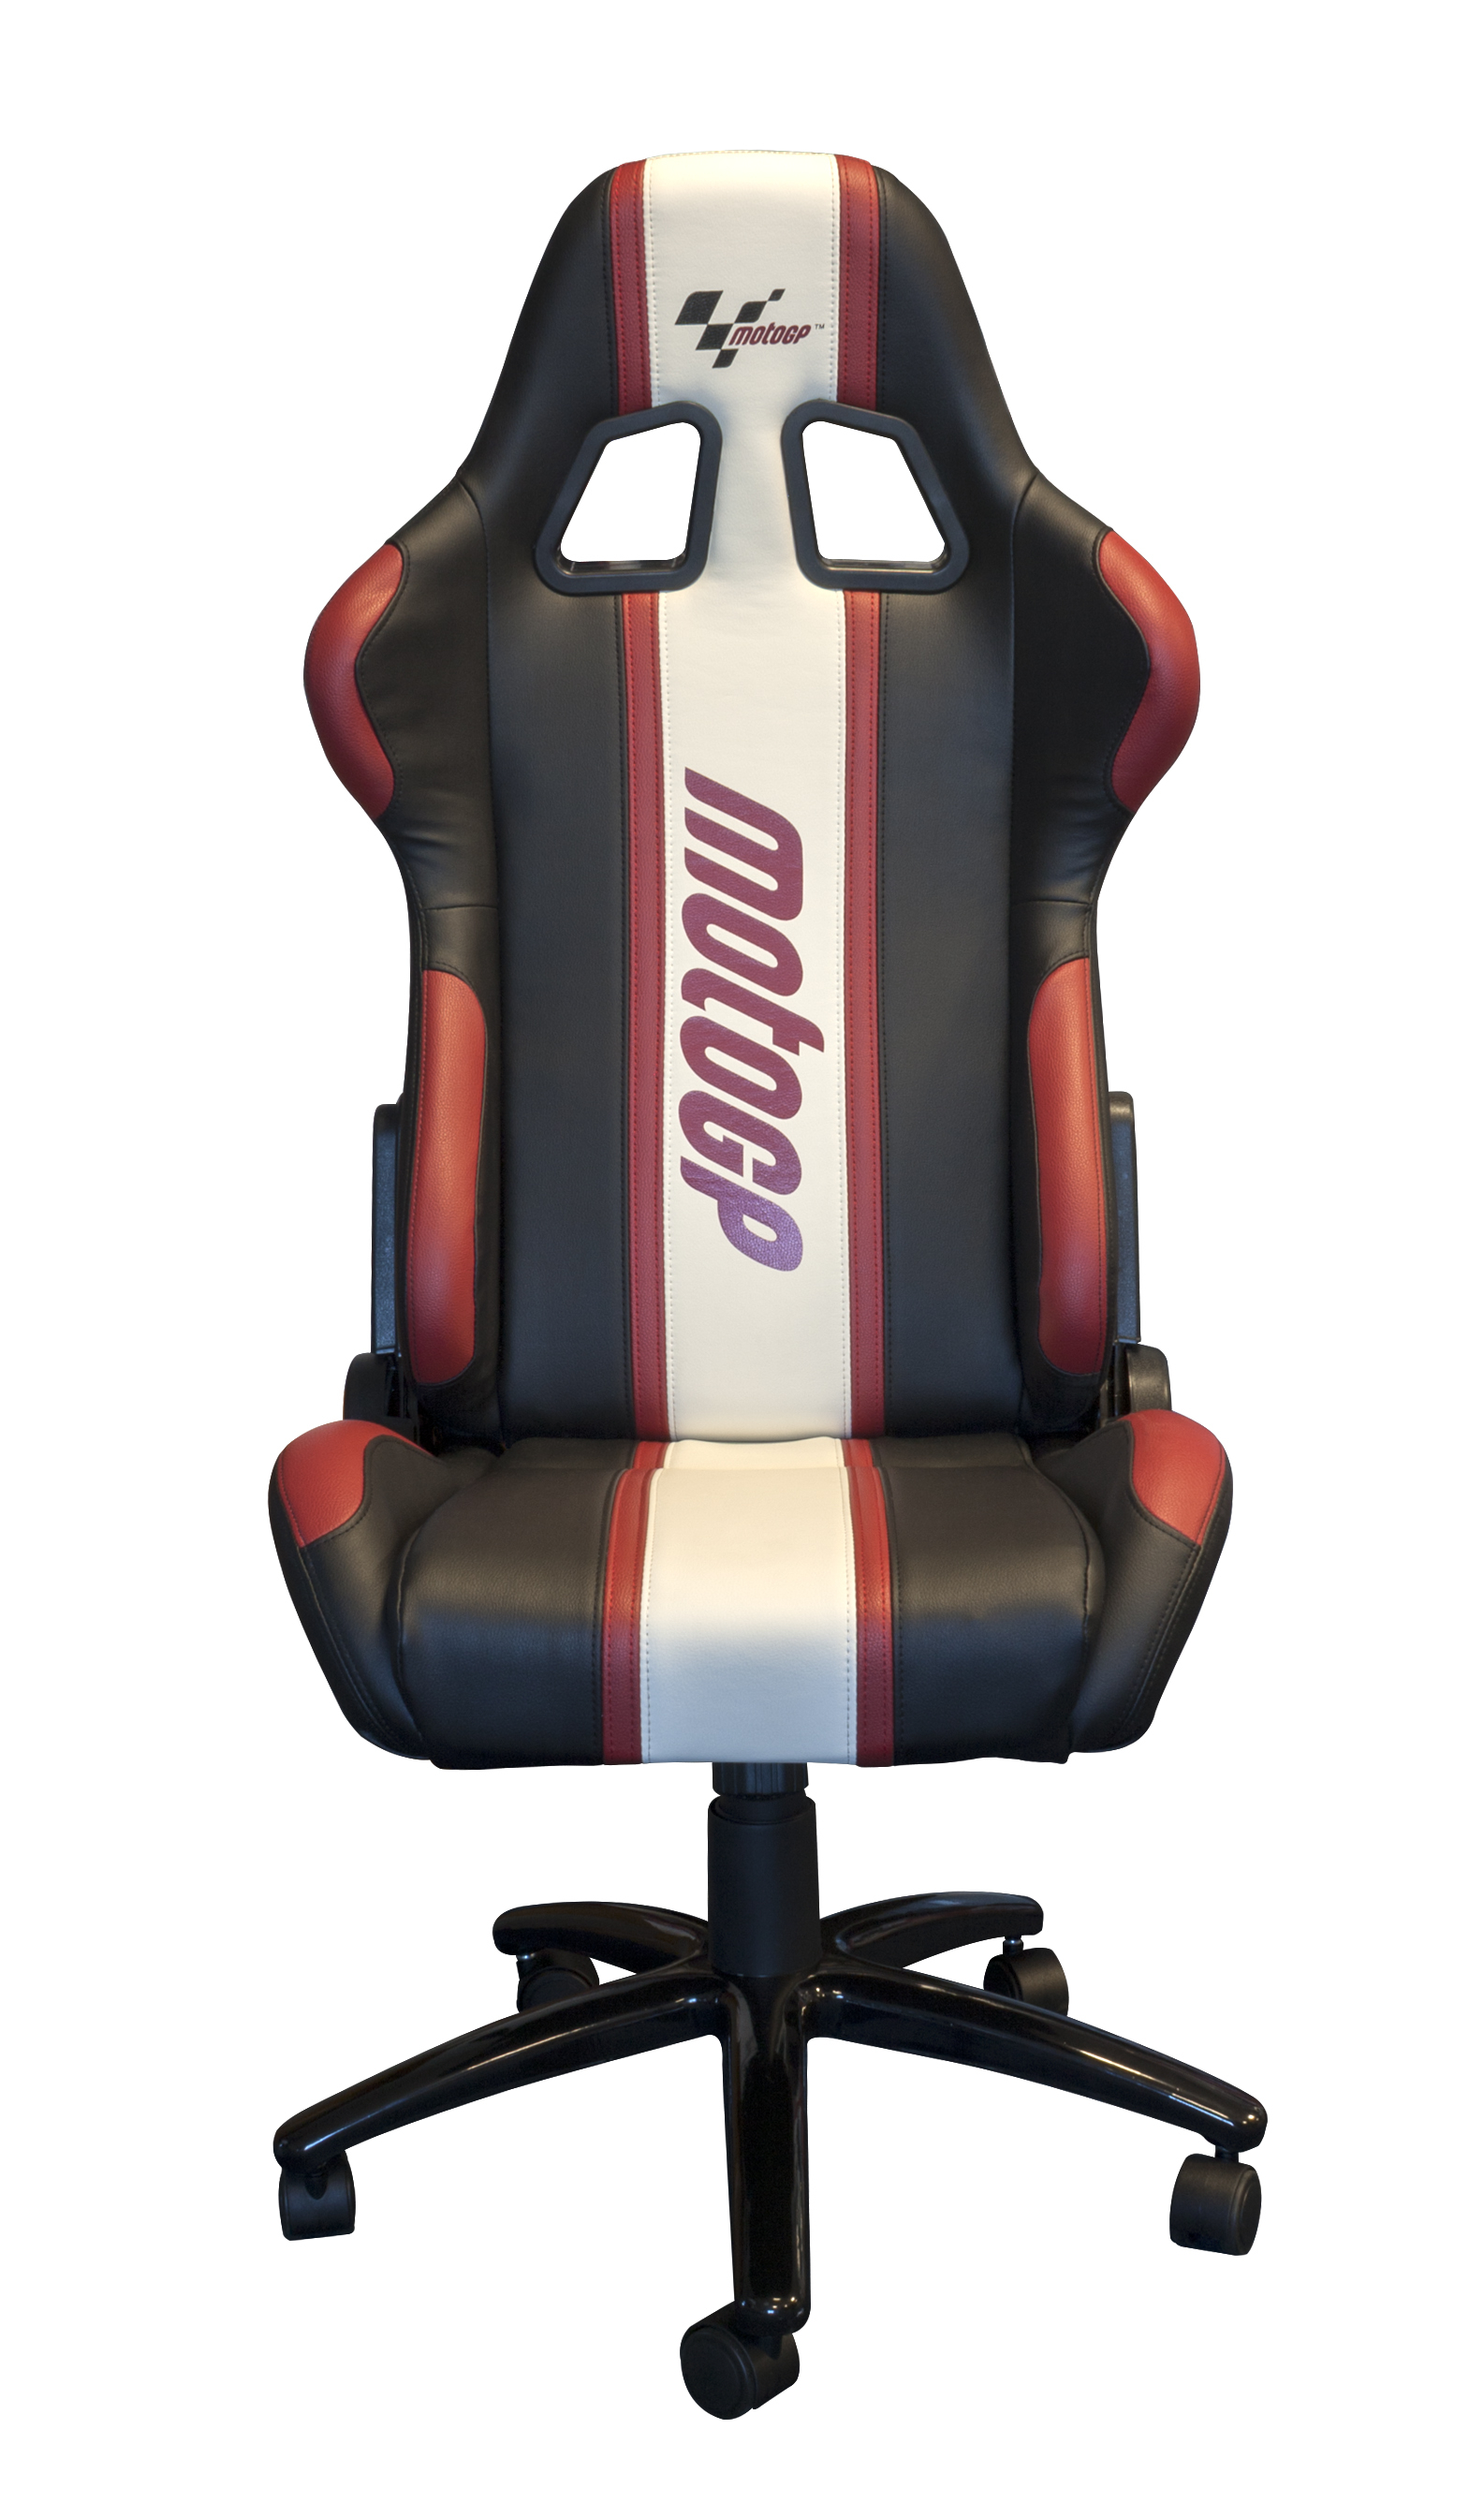 Variety Design On Office Chair Bucket Seat 94 Racing Style Office pertaining to dimensions 1585 X 2673